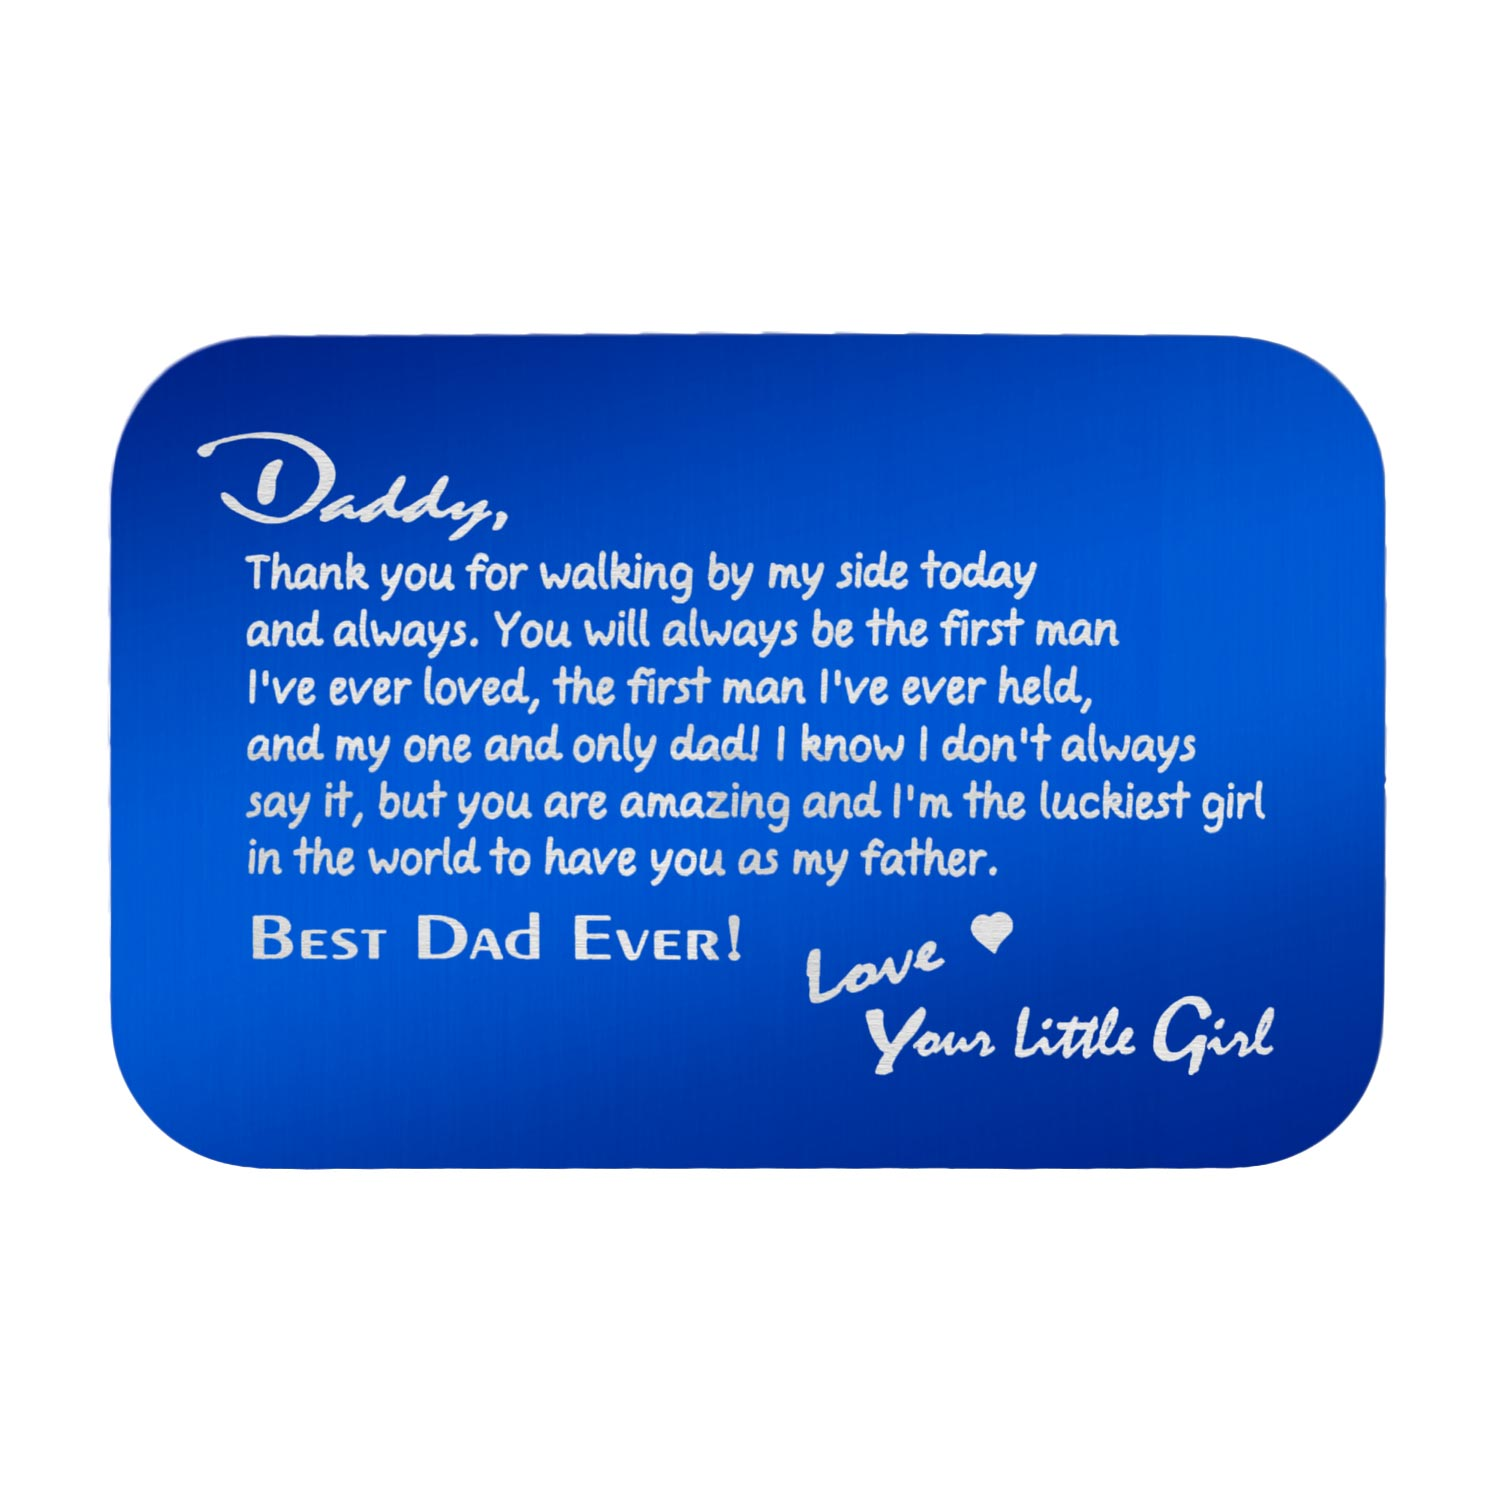 Stainless Steel Personalized Text Engraved Best Dad Wallet Card Father\'s Day Birthday Gift Blue